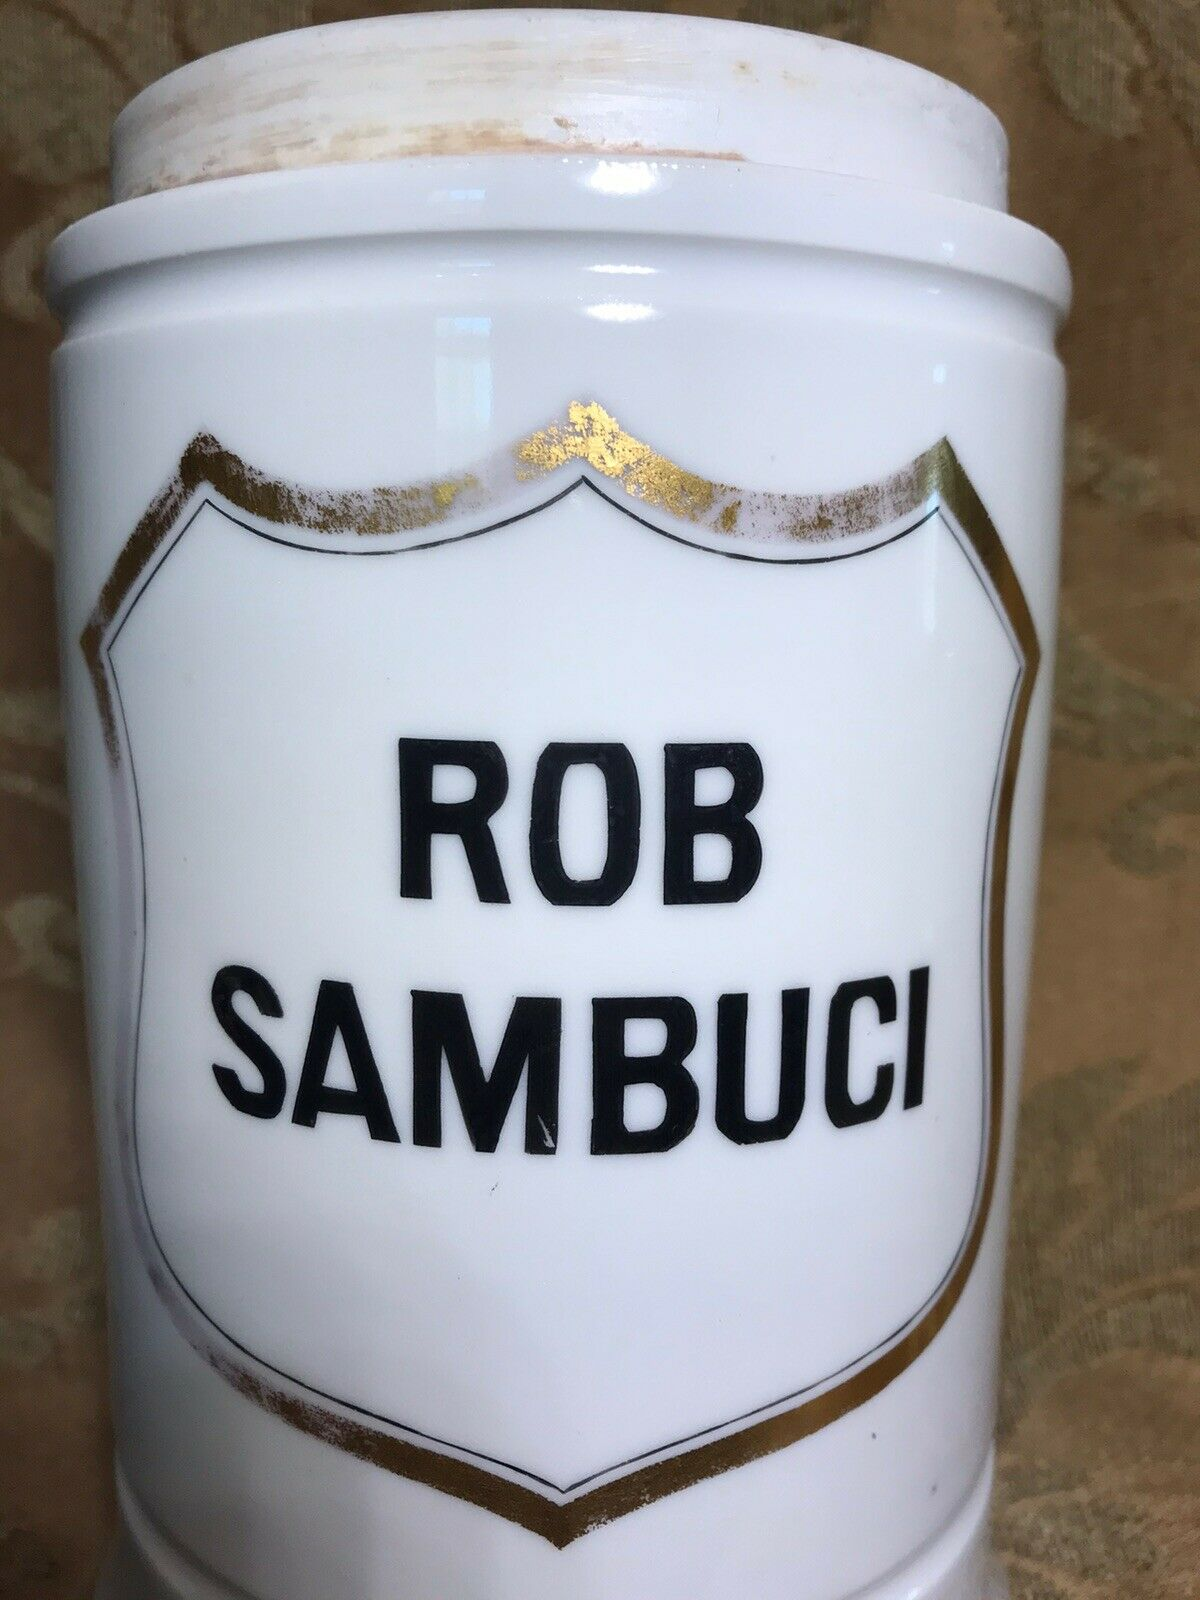 7 GERMAN Apothecary Porcelain Ointment Jar With Lid Label ROB SAMBUCI  - $35.00